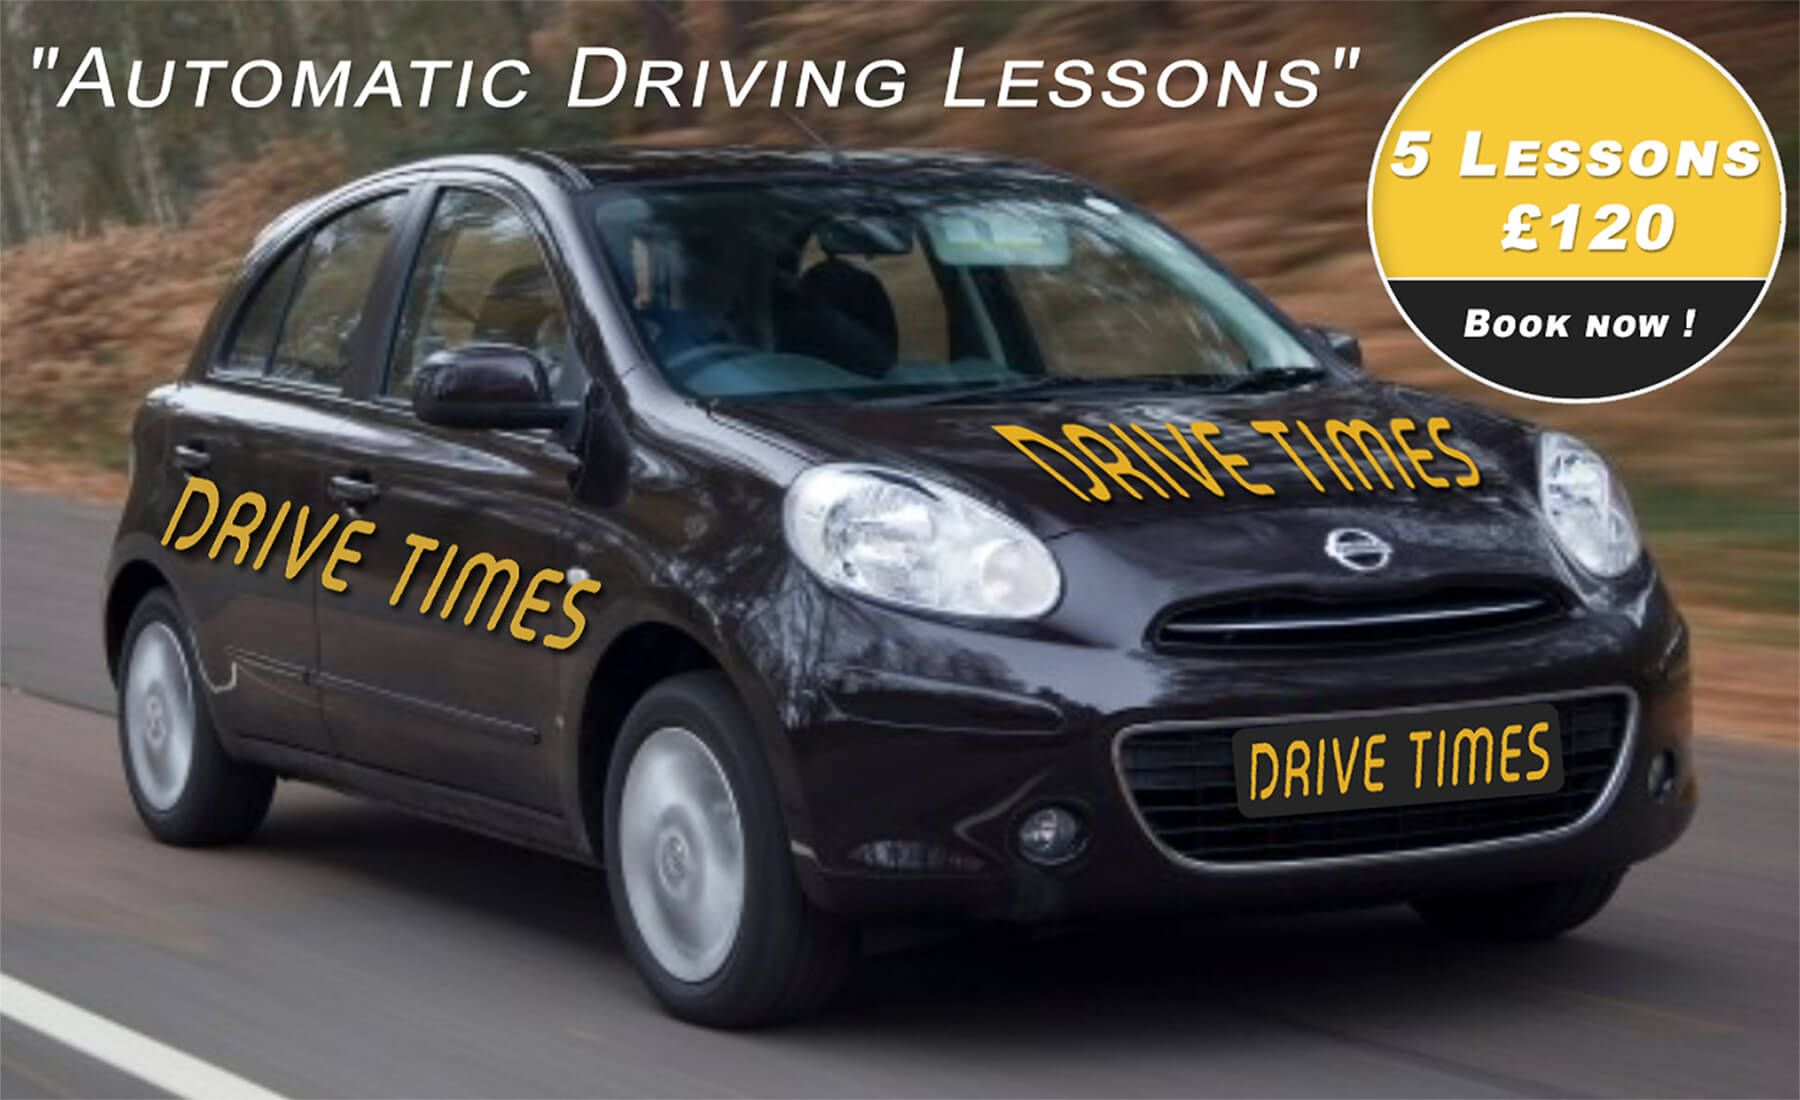 driving lessons palmers green We are a rapidly growing driving school, due to our high advertising spend and our online presence, we have plenty of work and opportunities for ADI's and PDI's.  http://www.drive-times.com